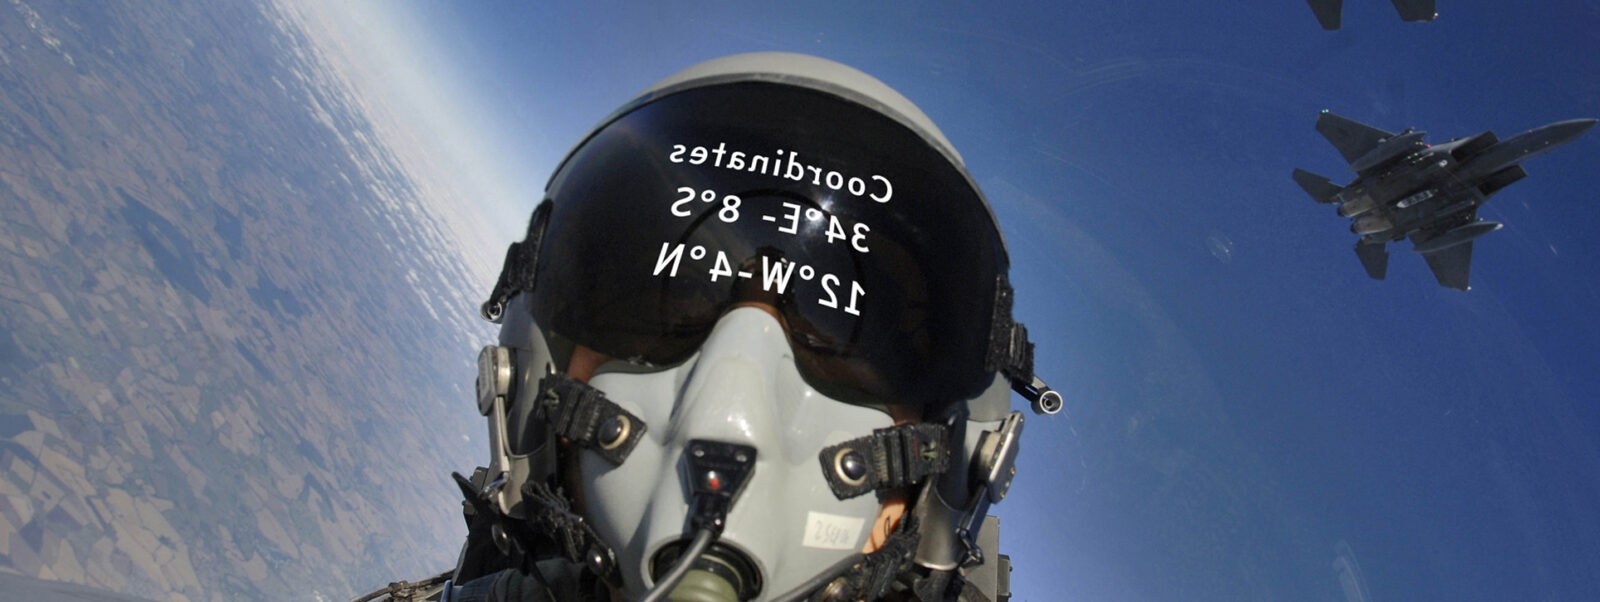 060803-F-2907C-107  	U.S. Air Force Master Sgt. Lance Cheung photographs himself and a three-ship formation of F-15E Strike Eagle aircraft from Royal Air Force Lakenheath, England, on Aug. 3, 2006.  The Strike Eagles are attached to the 492nd Fighter Squadron and are practicing basic surface attack techniques.  Cheung is a photojournalist for the Air Force News Agency in San Antonio, Texas.  DoD photo by Master Sgt. Lance Cheung, U.S. Air Force.  (Released)